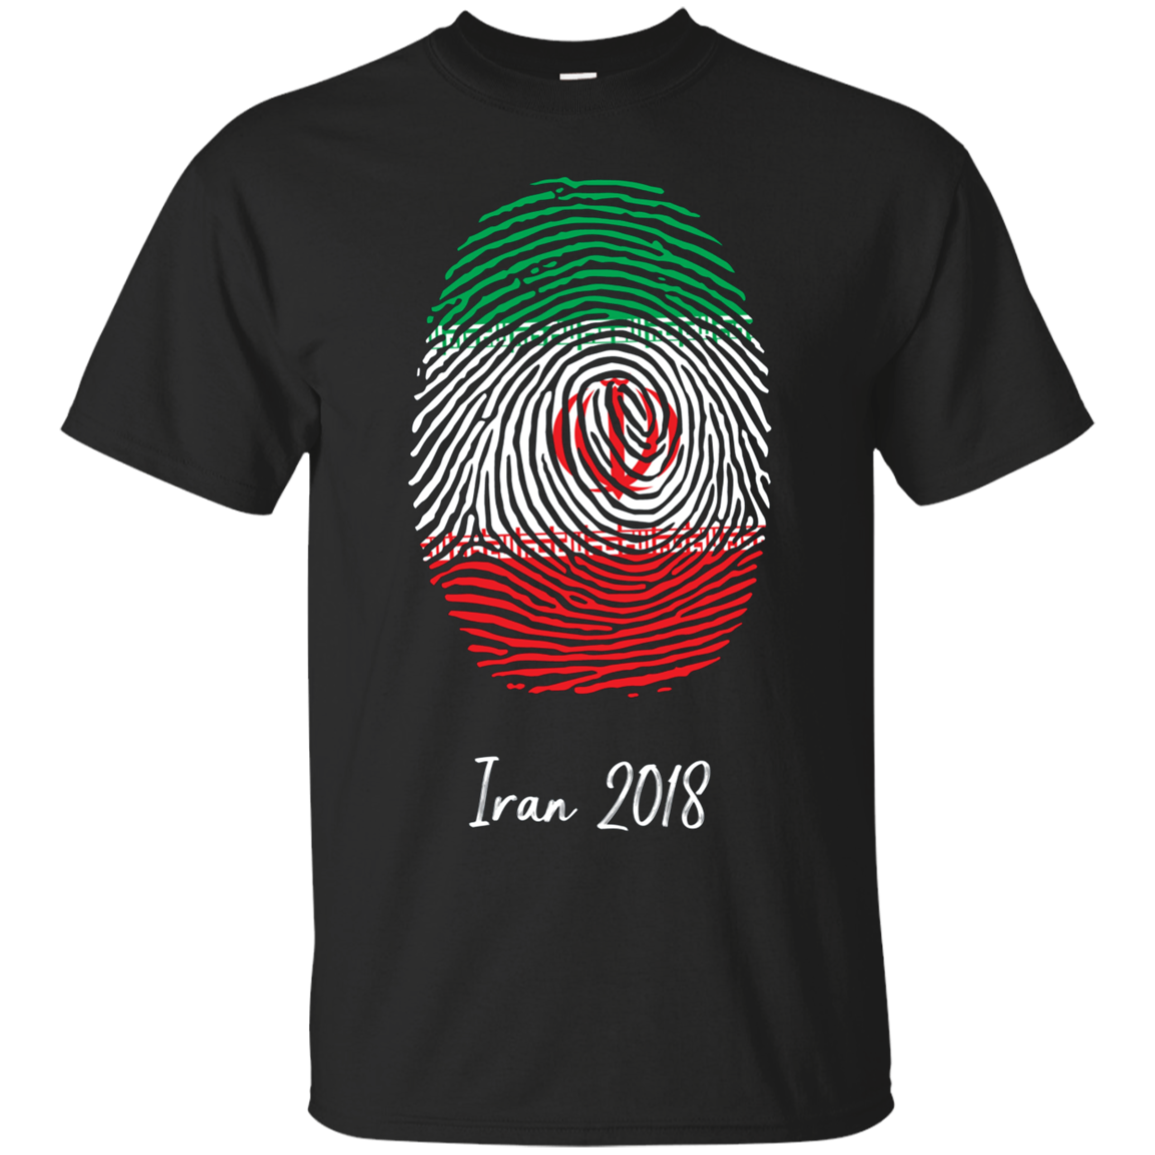 Iran Shirt 2018 Thumbprint Soccer Flag Design